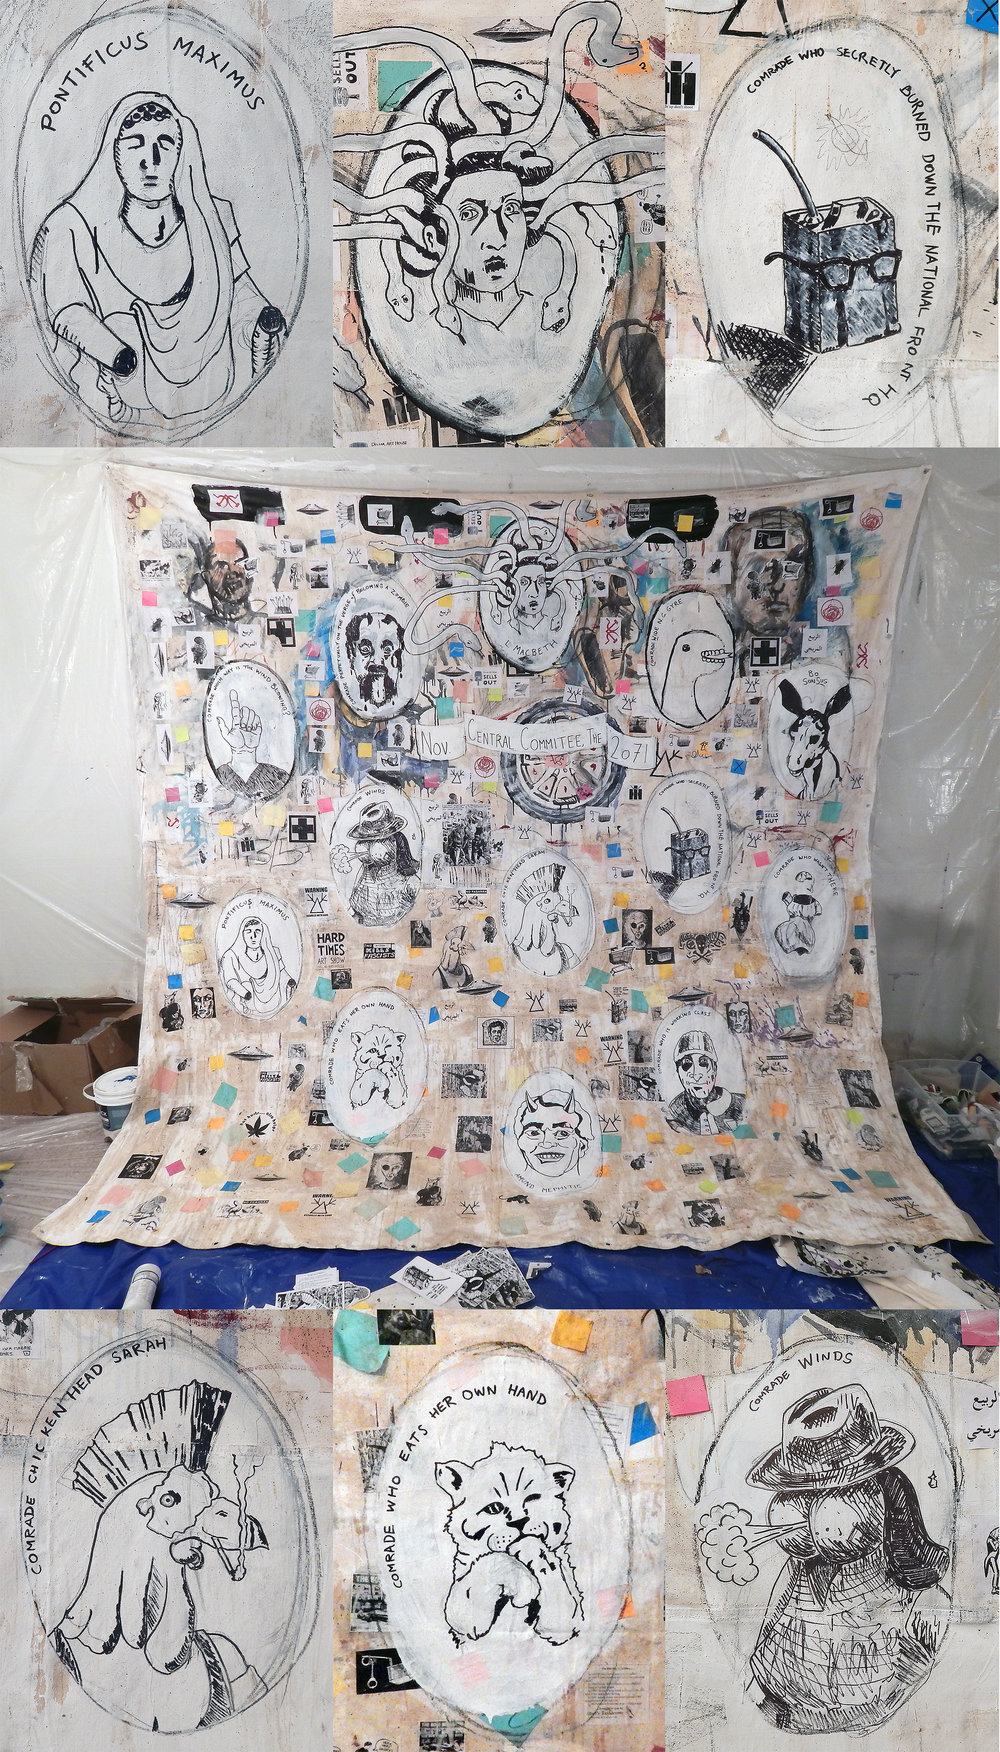 """Central Committee, November 2071 (Revolt of the Swivel Chairs)"" in progress by Adam Turl (with details). Acrylic, Sharpie, ink, stickers, post-it notes, staples, coffee and mixed-media on canvas tarp.(Las Vegas studio, 2017)"